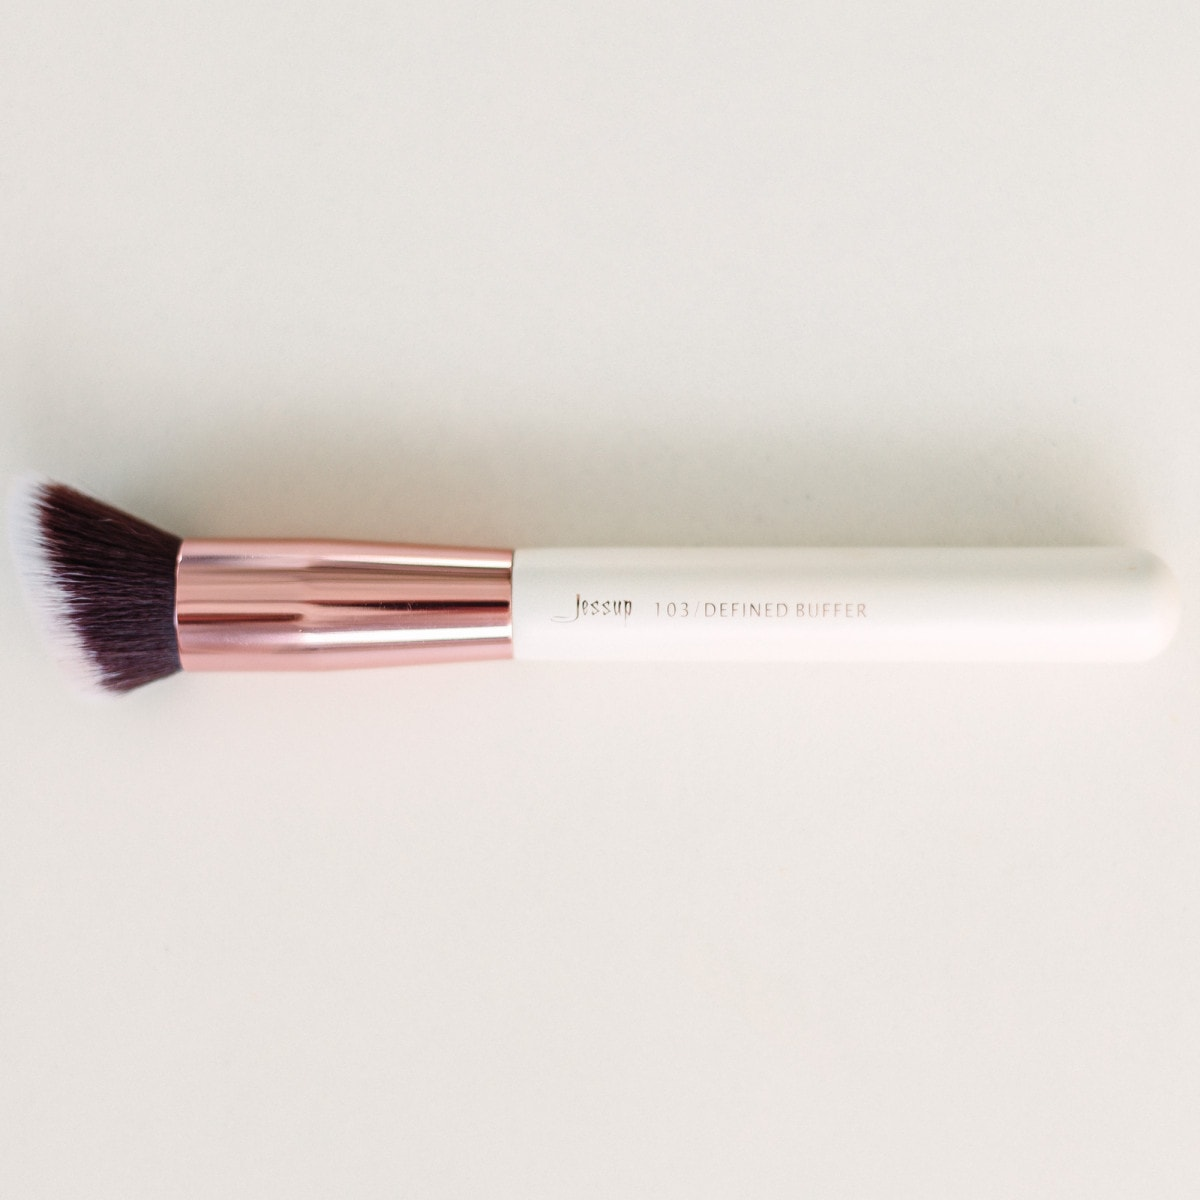 Makeup Brushes Guide - Jessup 103 Defined Buffer